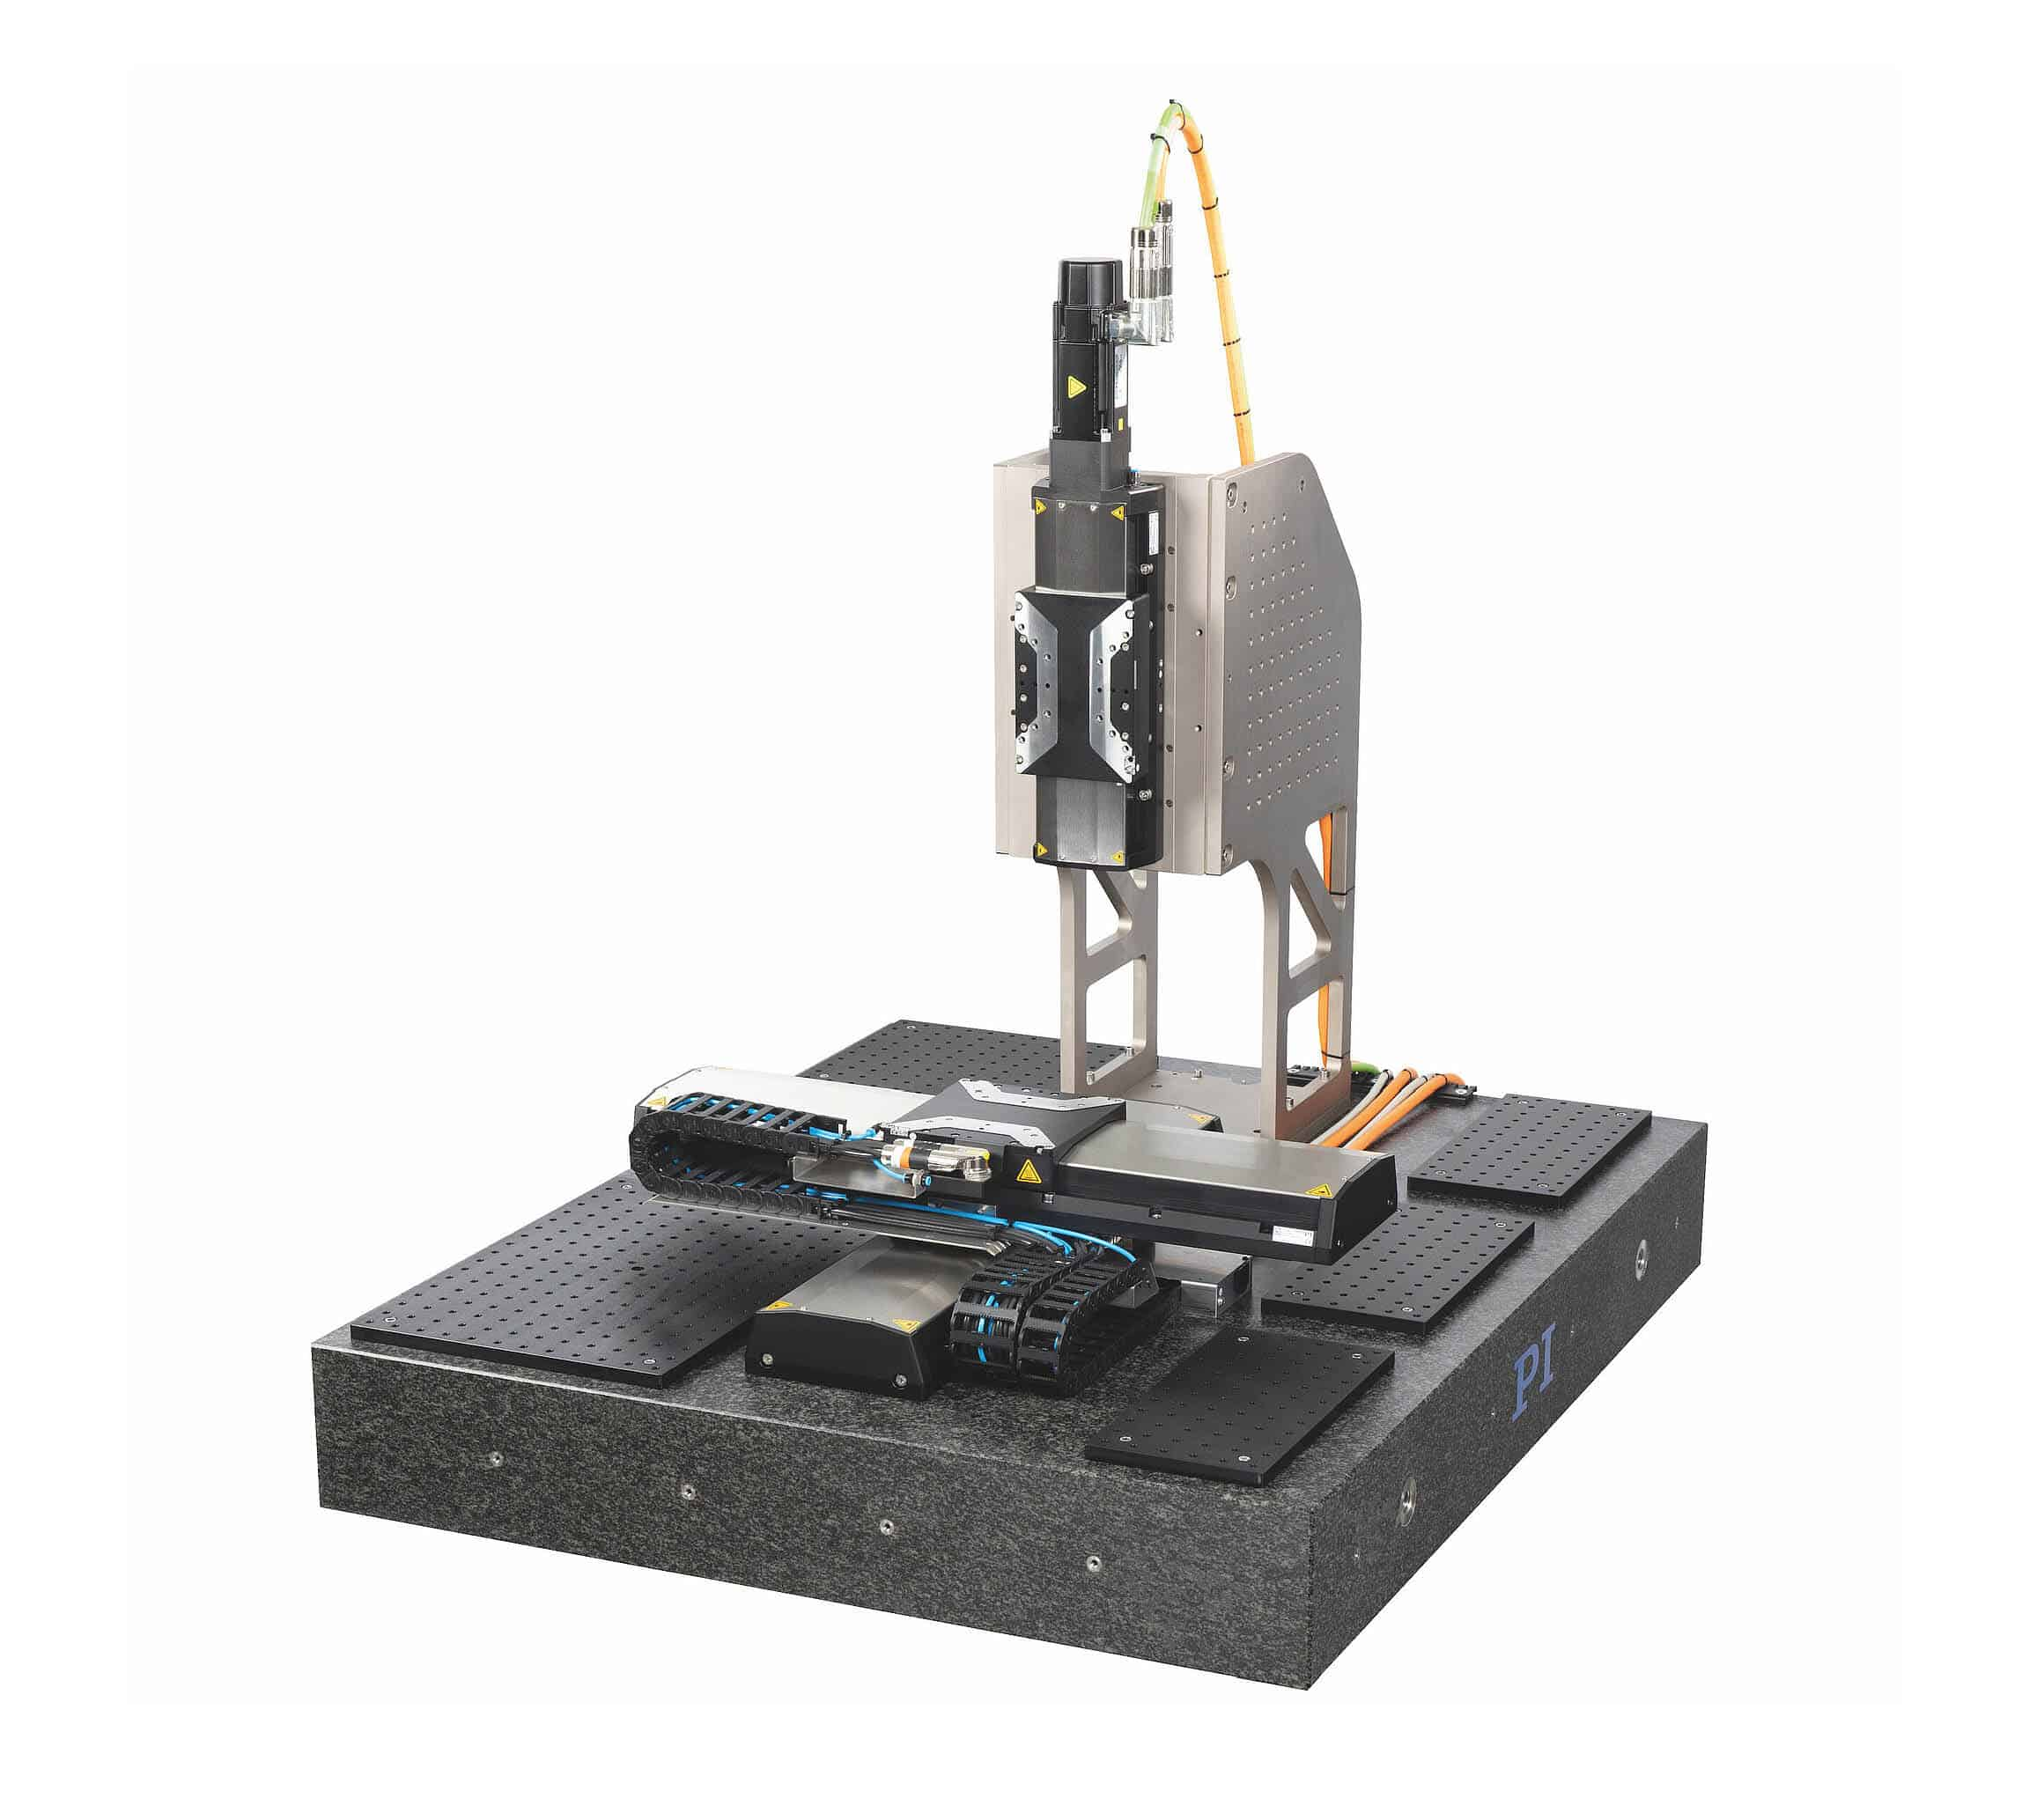 XY(Z) Multi-axis motion System